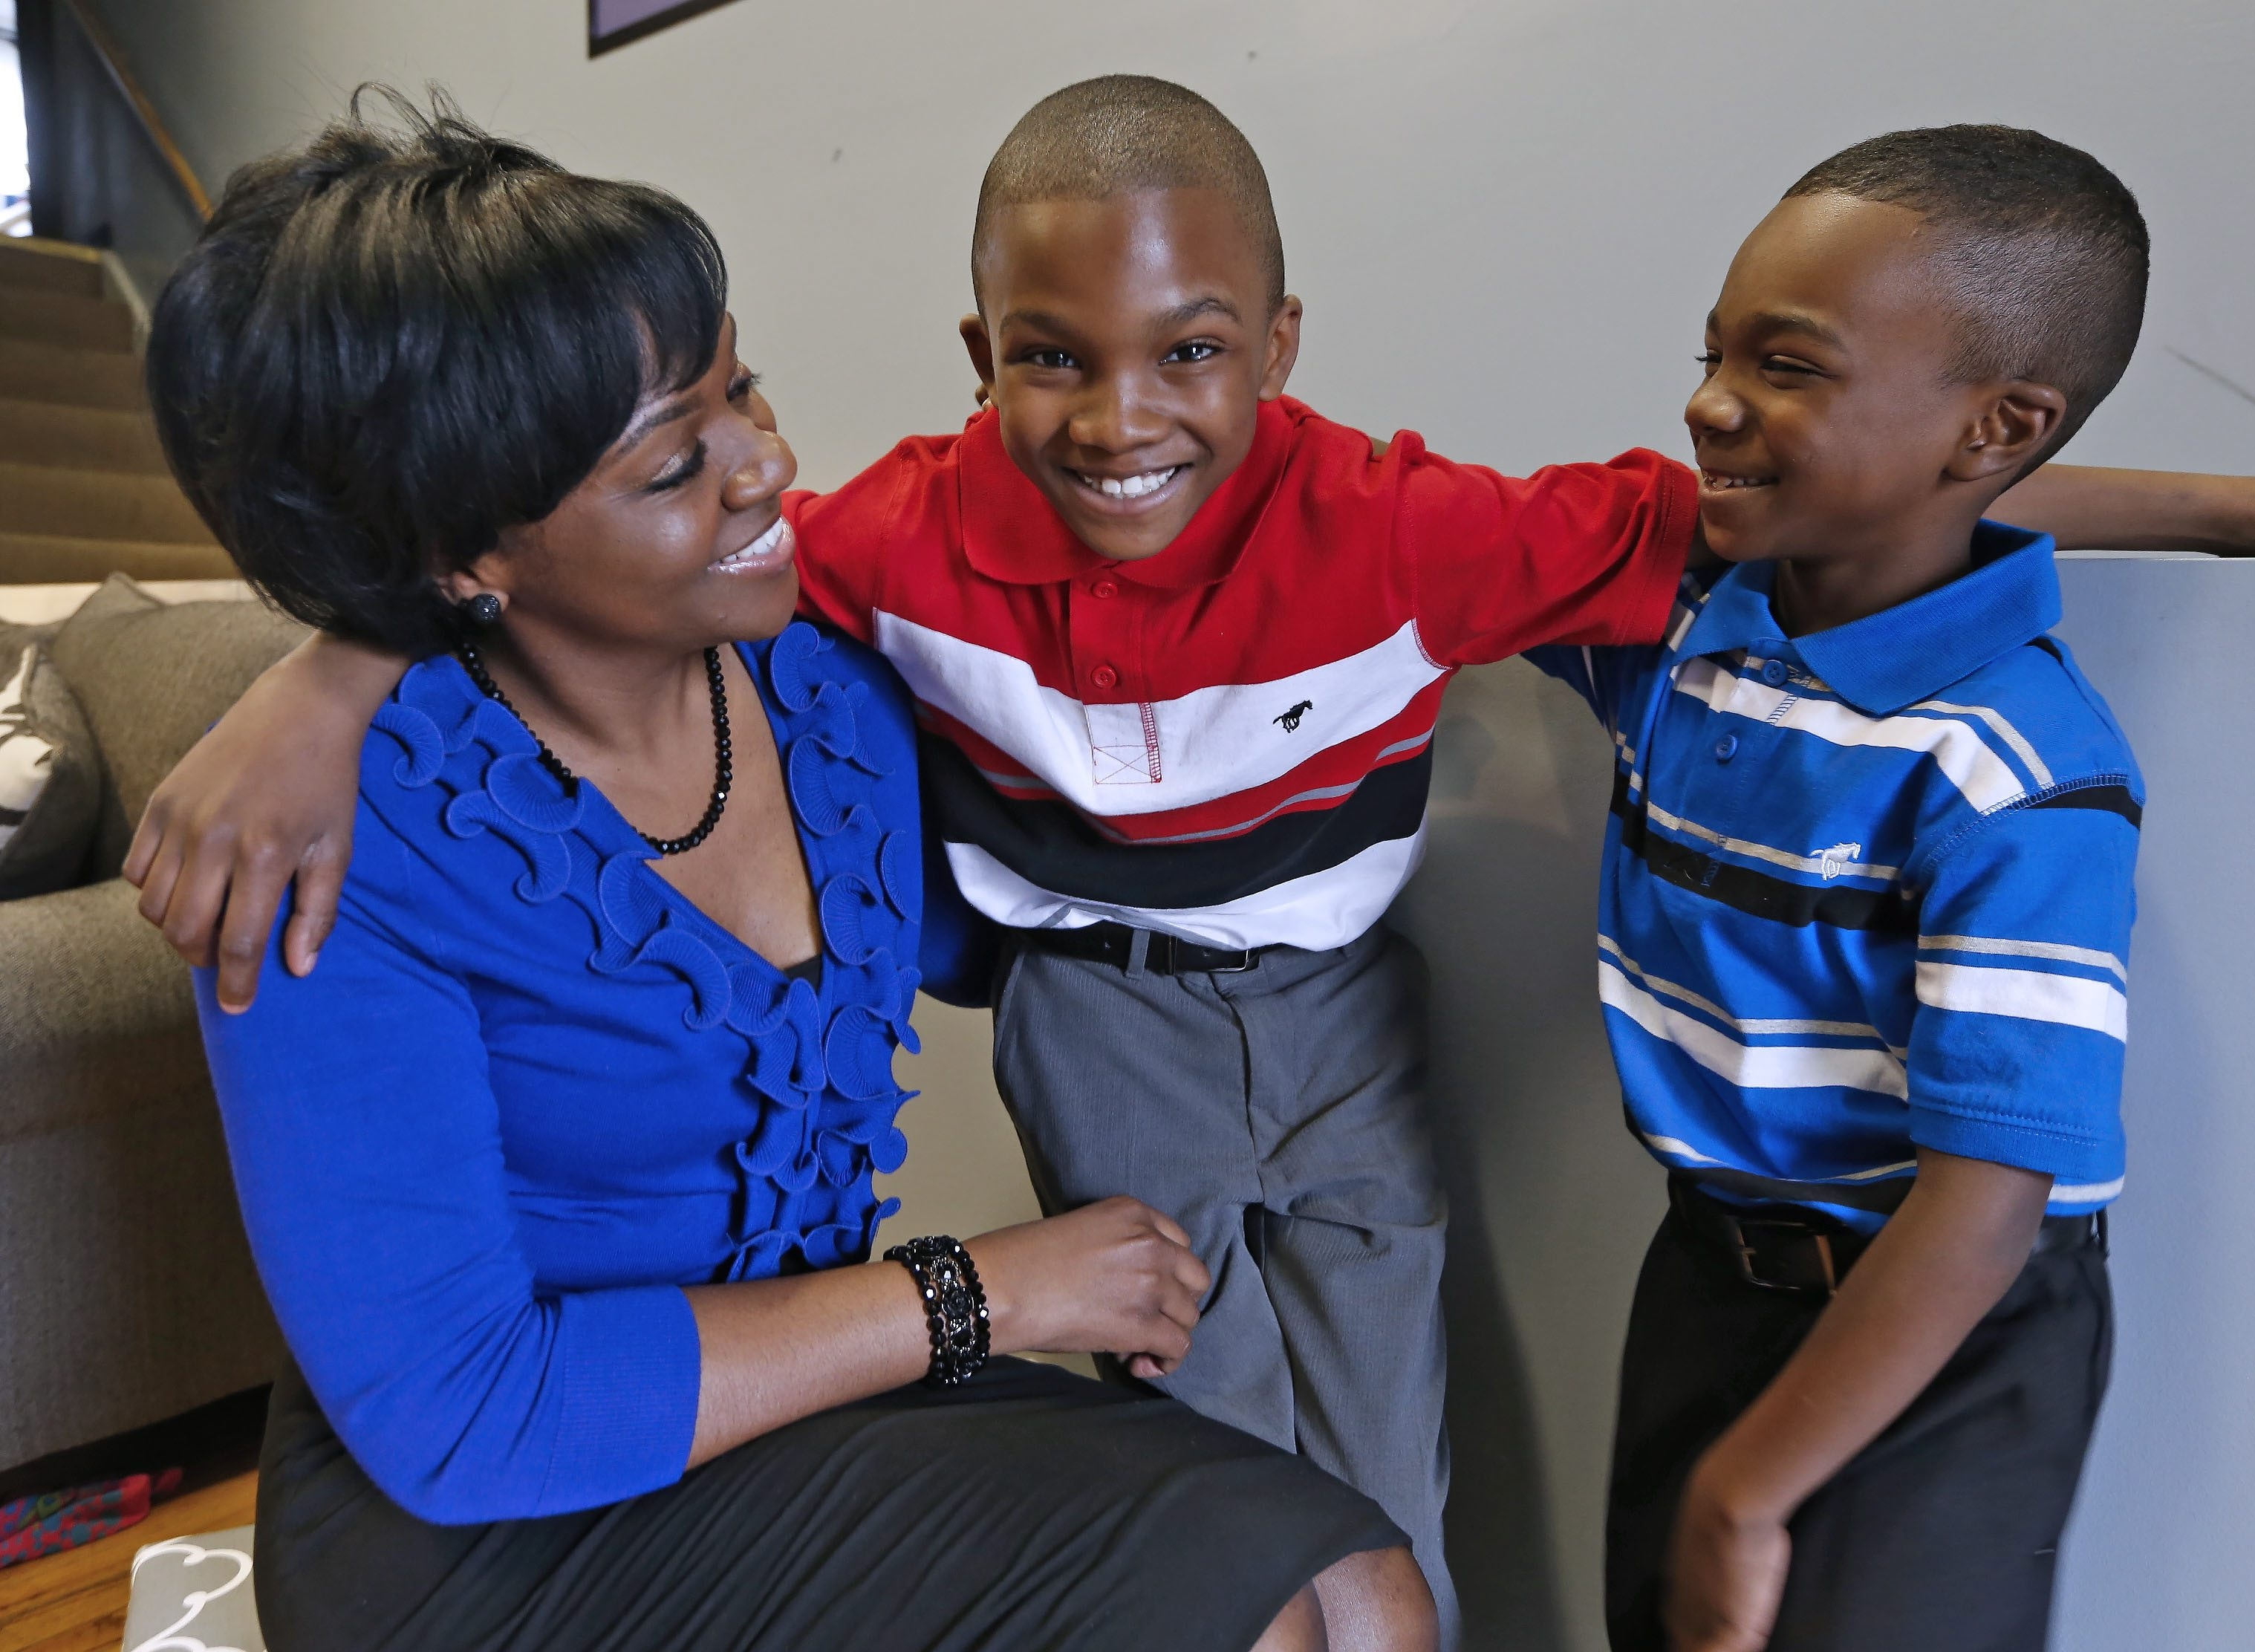 """David """"Tre"""" Hall, 10, in red shirt, is seen with his mom, Melissa, and brother Aiden, 6, in their Cheektowaga home on April 10."""